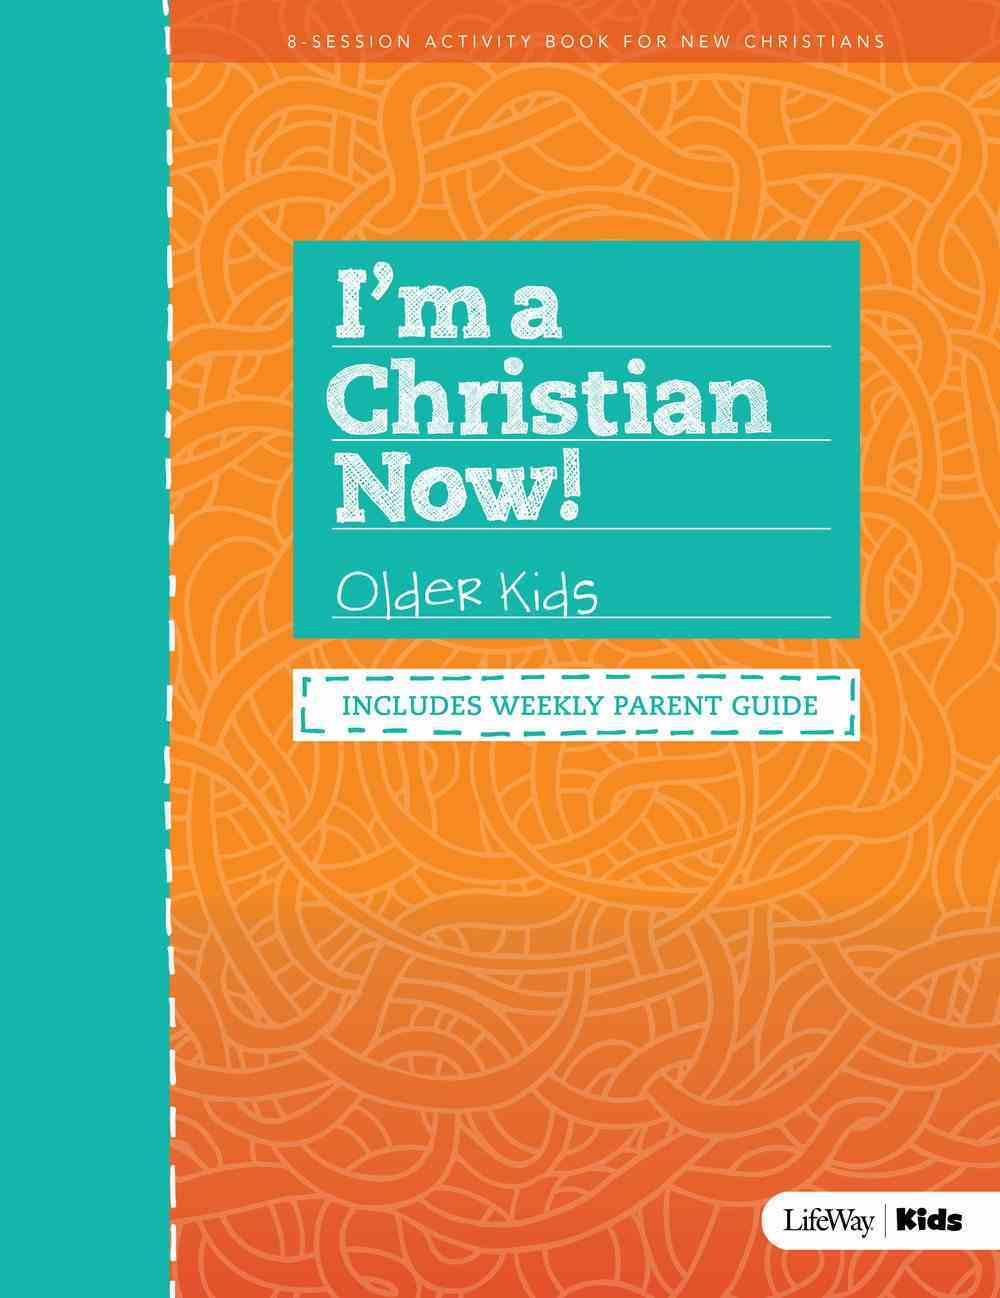 I'm a Christian Now!: Older Kids (8 Session Activity Book Includes Weekly Parent Guide) Paperback